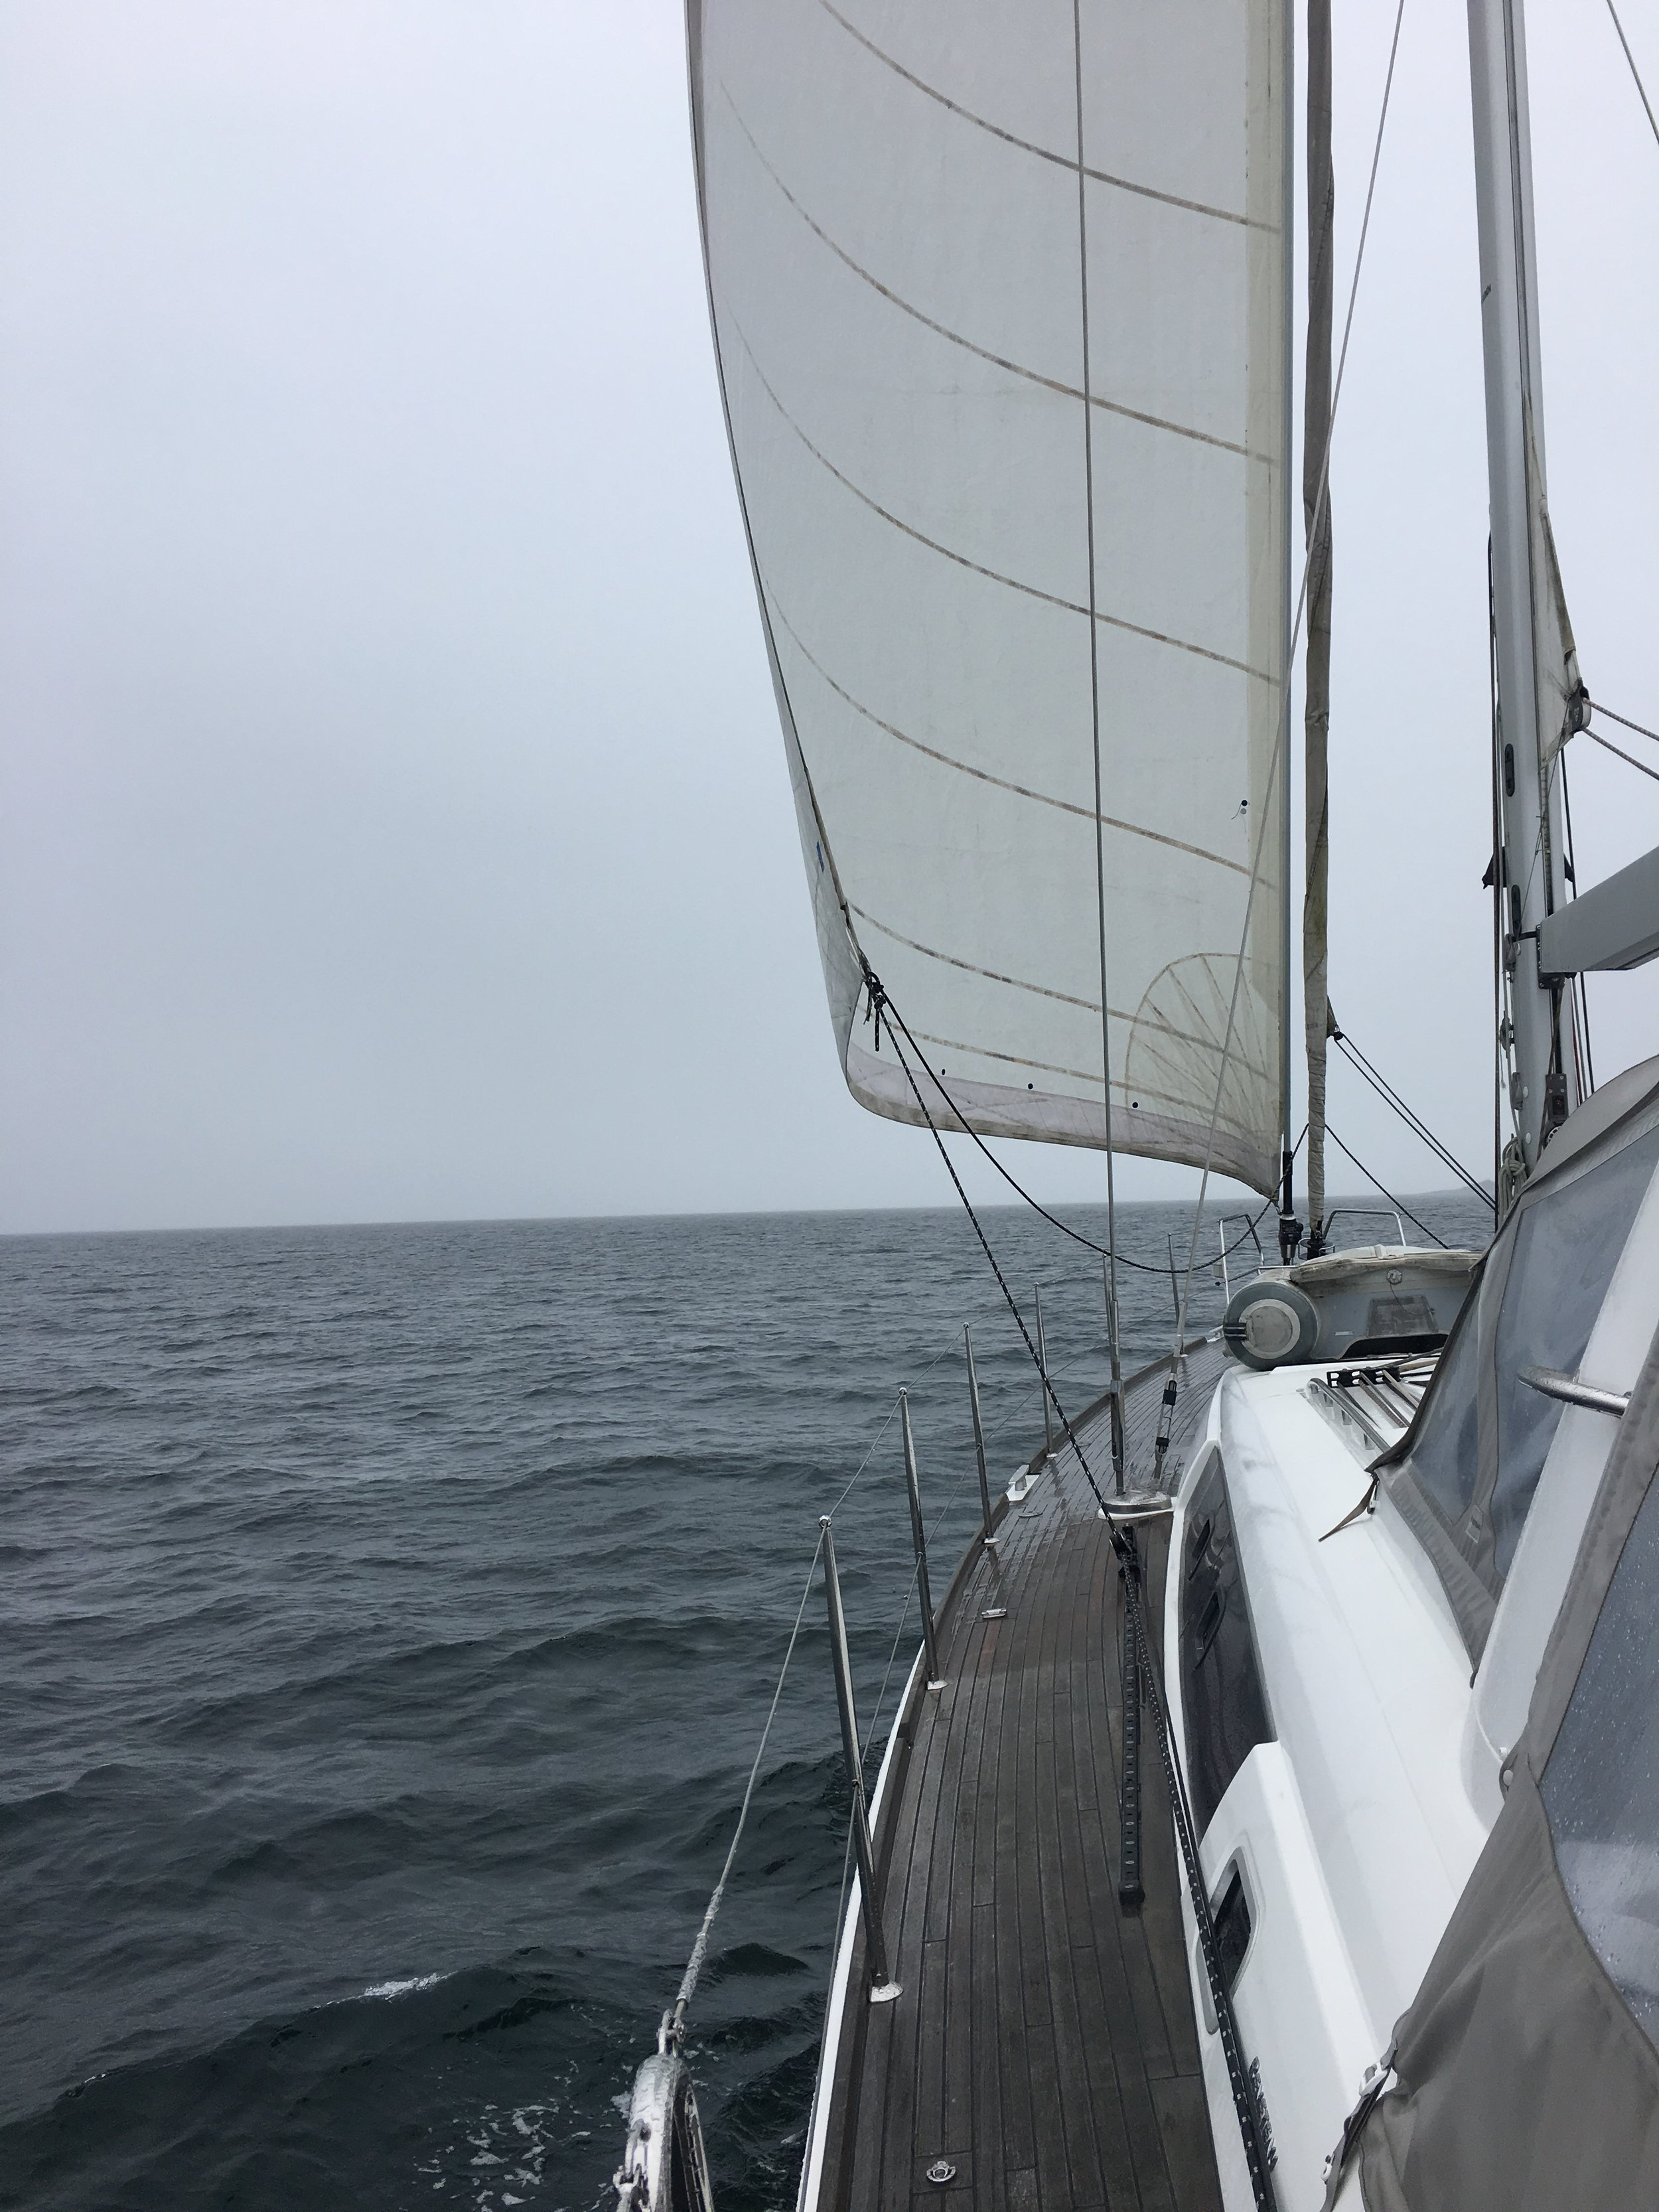 First day sailing in 20 knots of wind from behind us, so we unfurled the genoa.